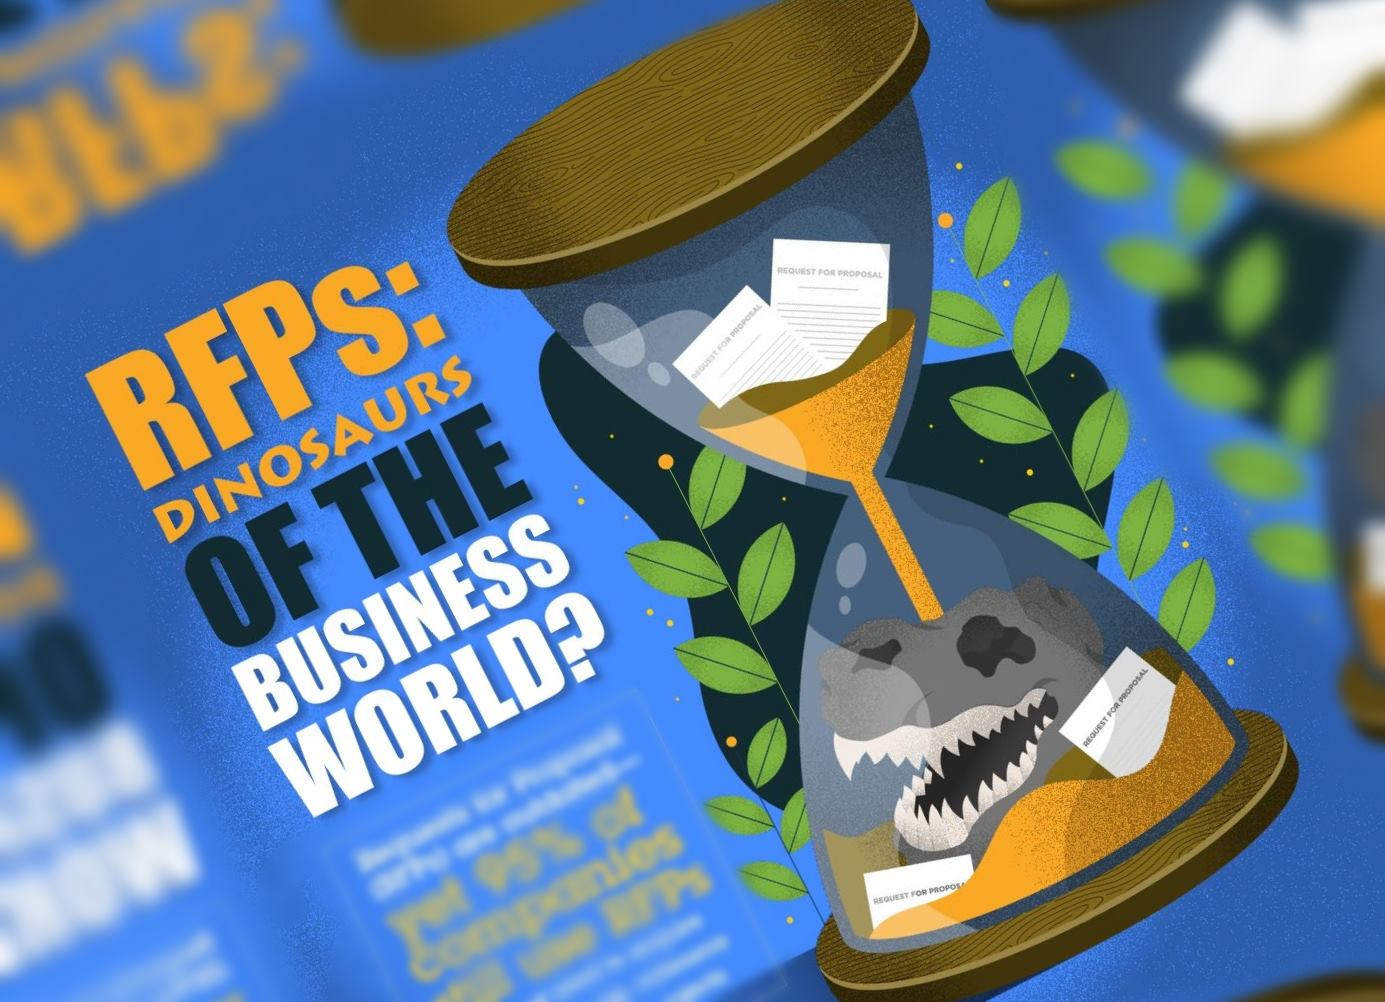 Requests For Proposal Are The Dinosaurs Of The Business World